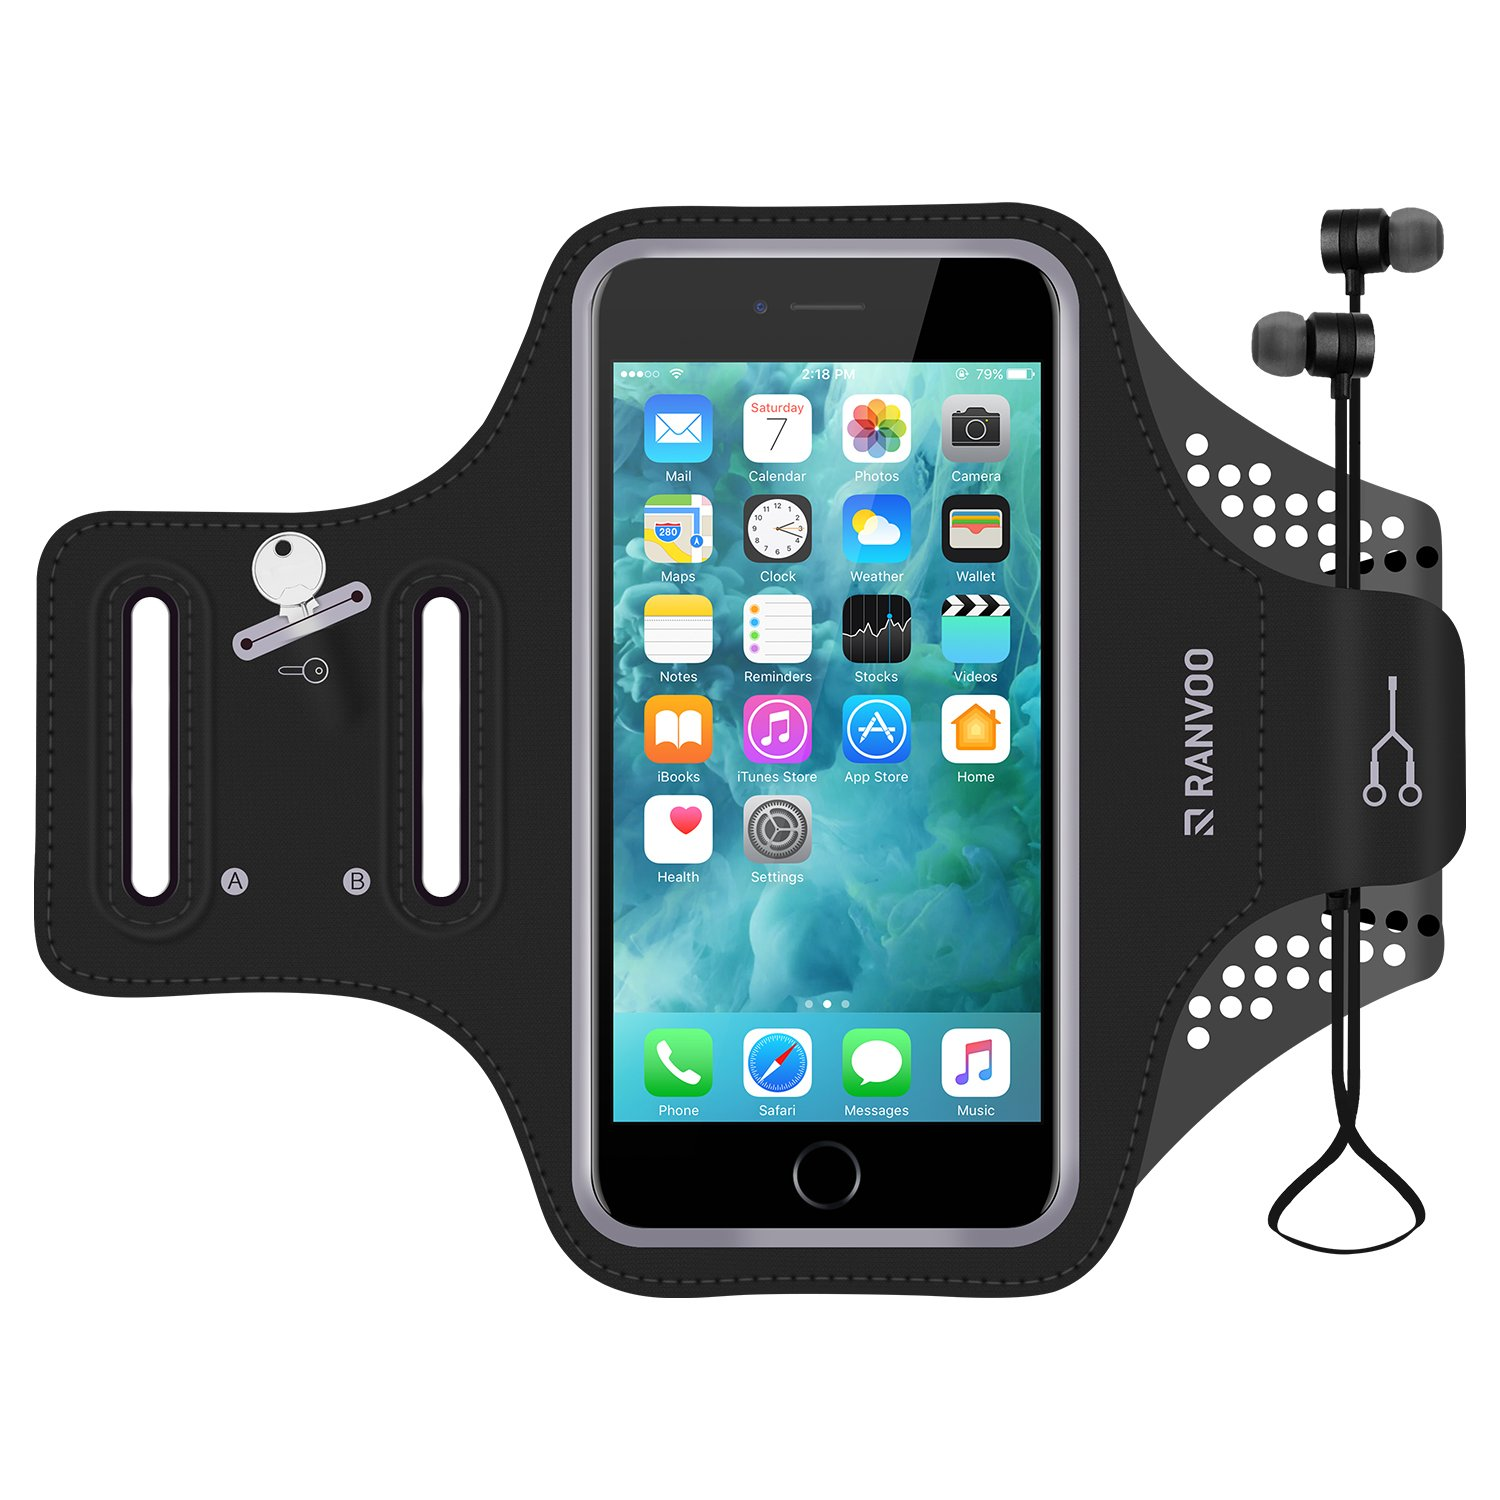 Armband for iPhone 7 Plus,8 Plus, 6s Plus, 6 Plus, RANVOO Water Resistant Jogging Running Sports Exercise Mobile Armband Case For Android iPhone Phones 5.5 Inch,Black